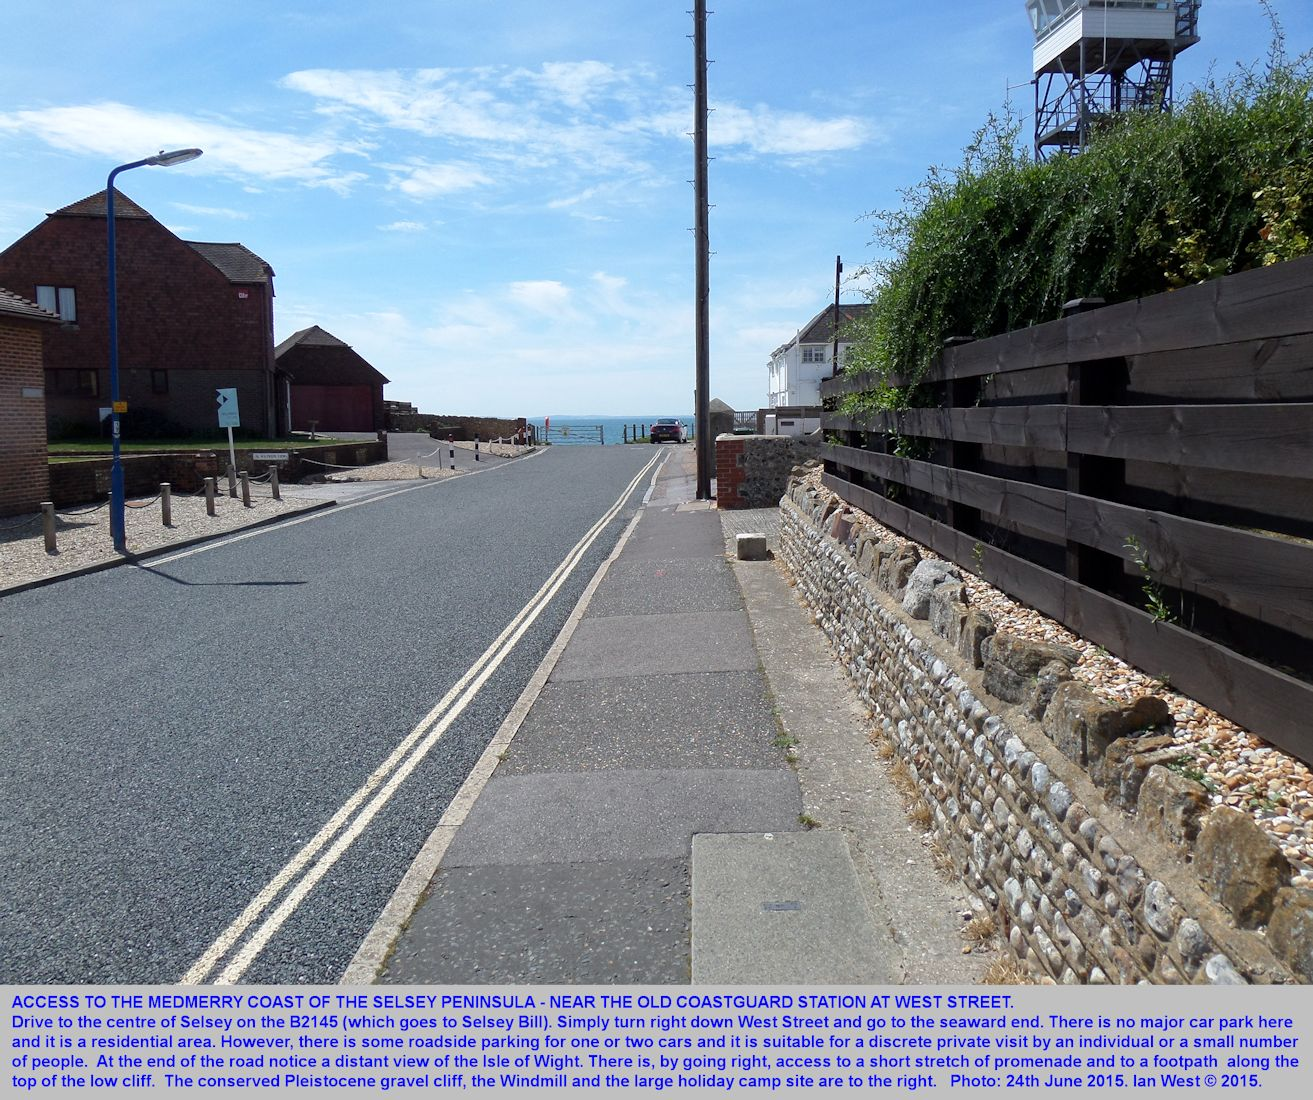 West Street, Selsey, is an access route to the coast of Medmerry at southeastern, Bracklesham Bay, Sussex, photograph 24th June 2015